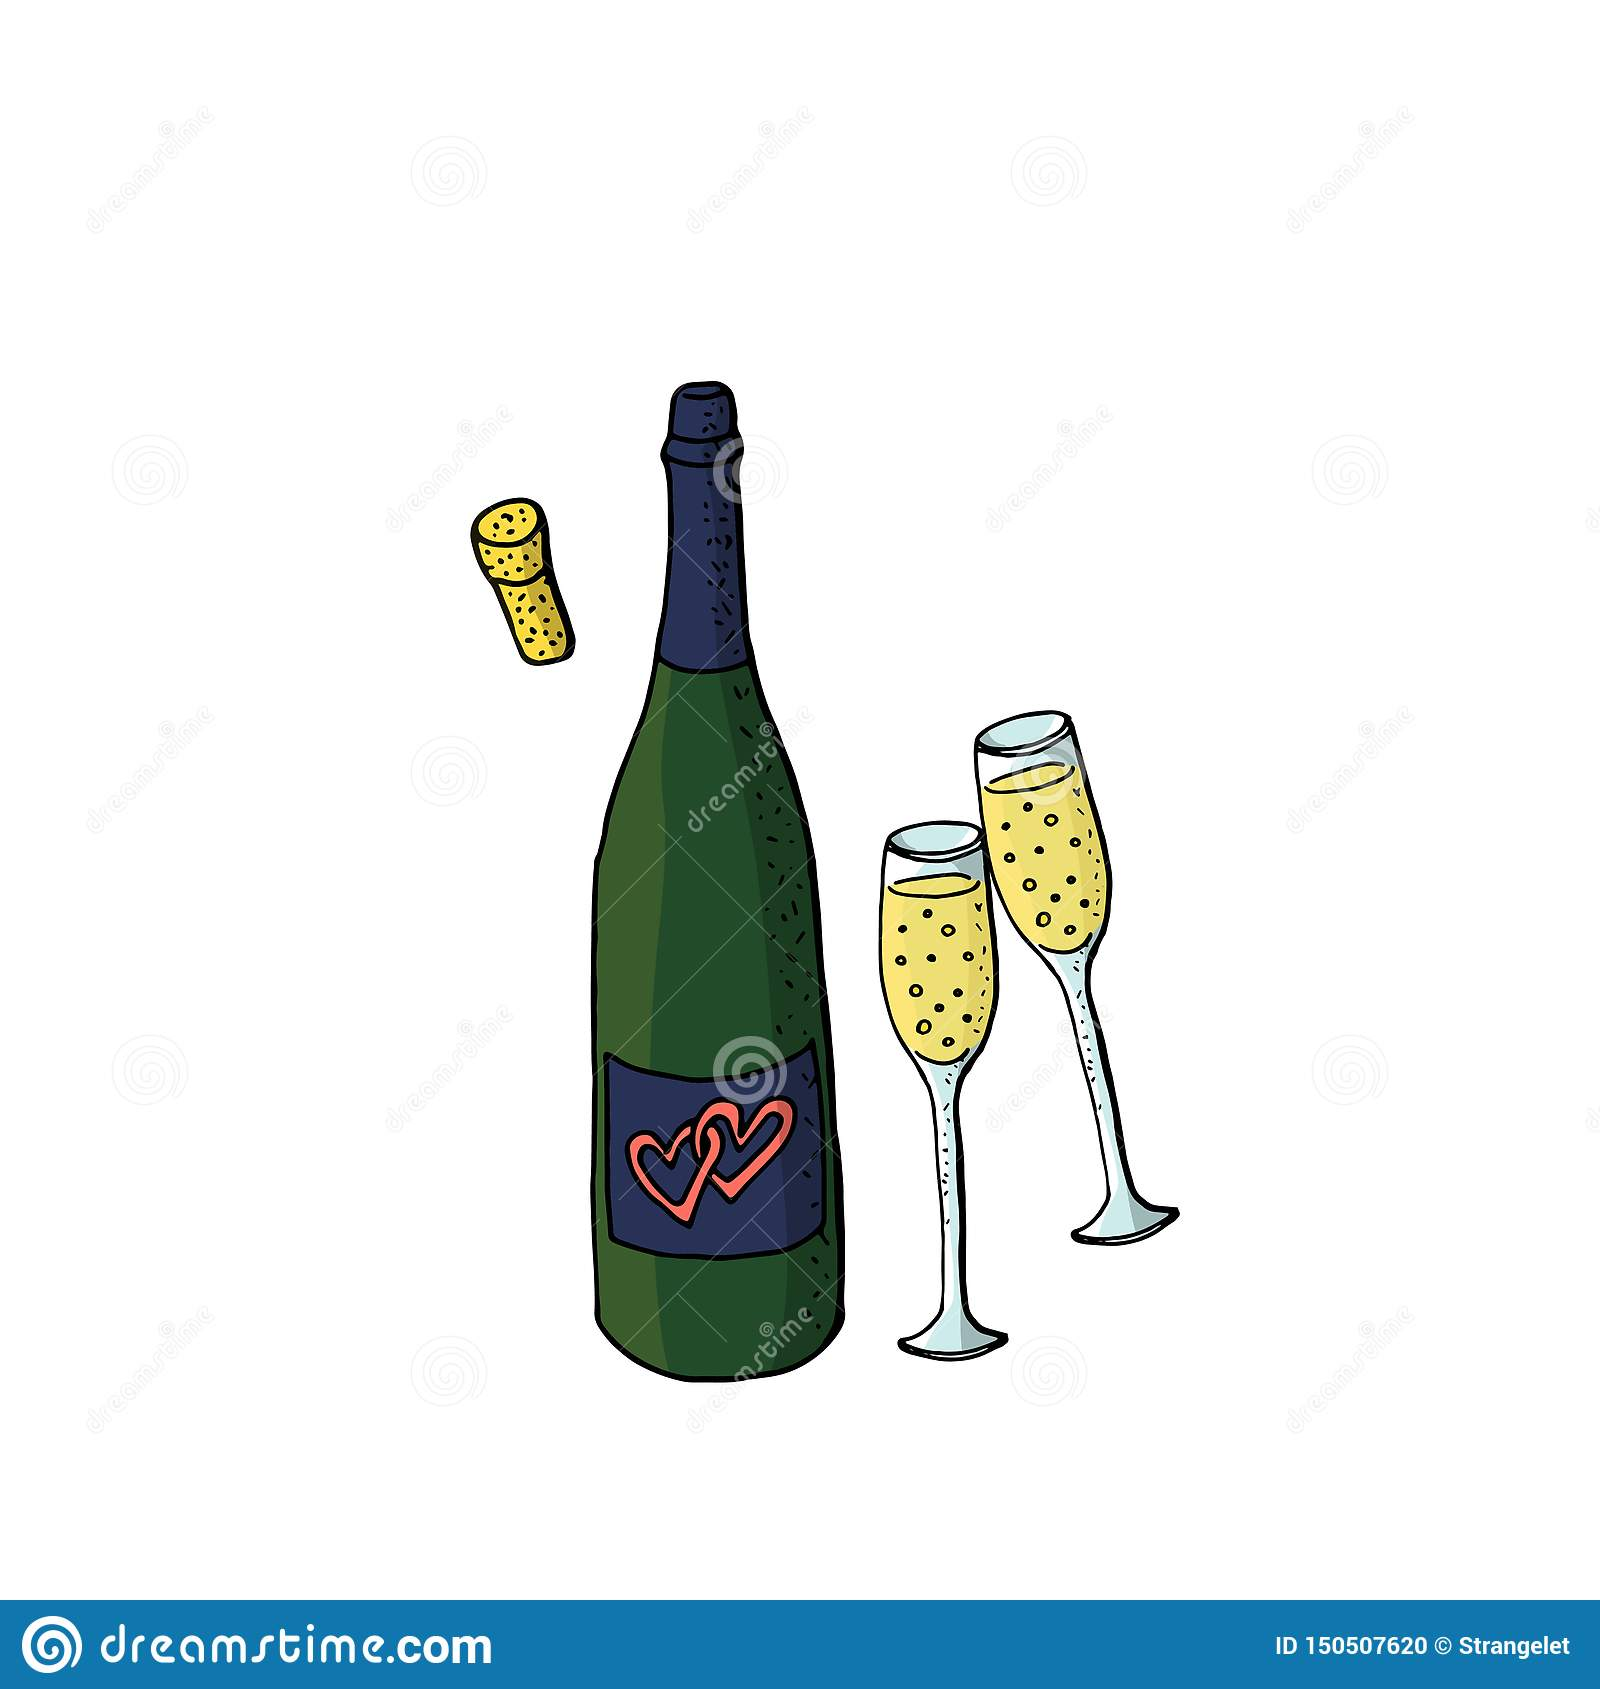 Wedding Clipart With Green Wine Bottle And Two Glasses Of Sparkling Wine Design Elements For Wedding Birthday Stock Illustration Illustration Of Outline Drawn 150507620